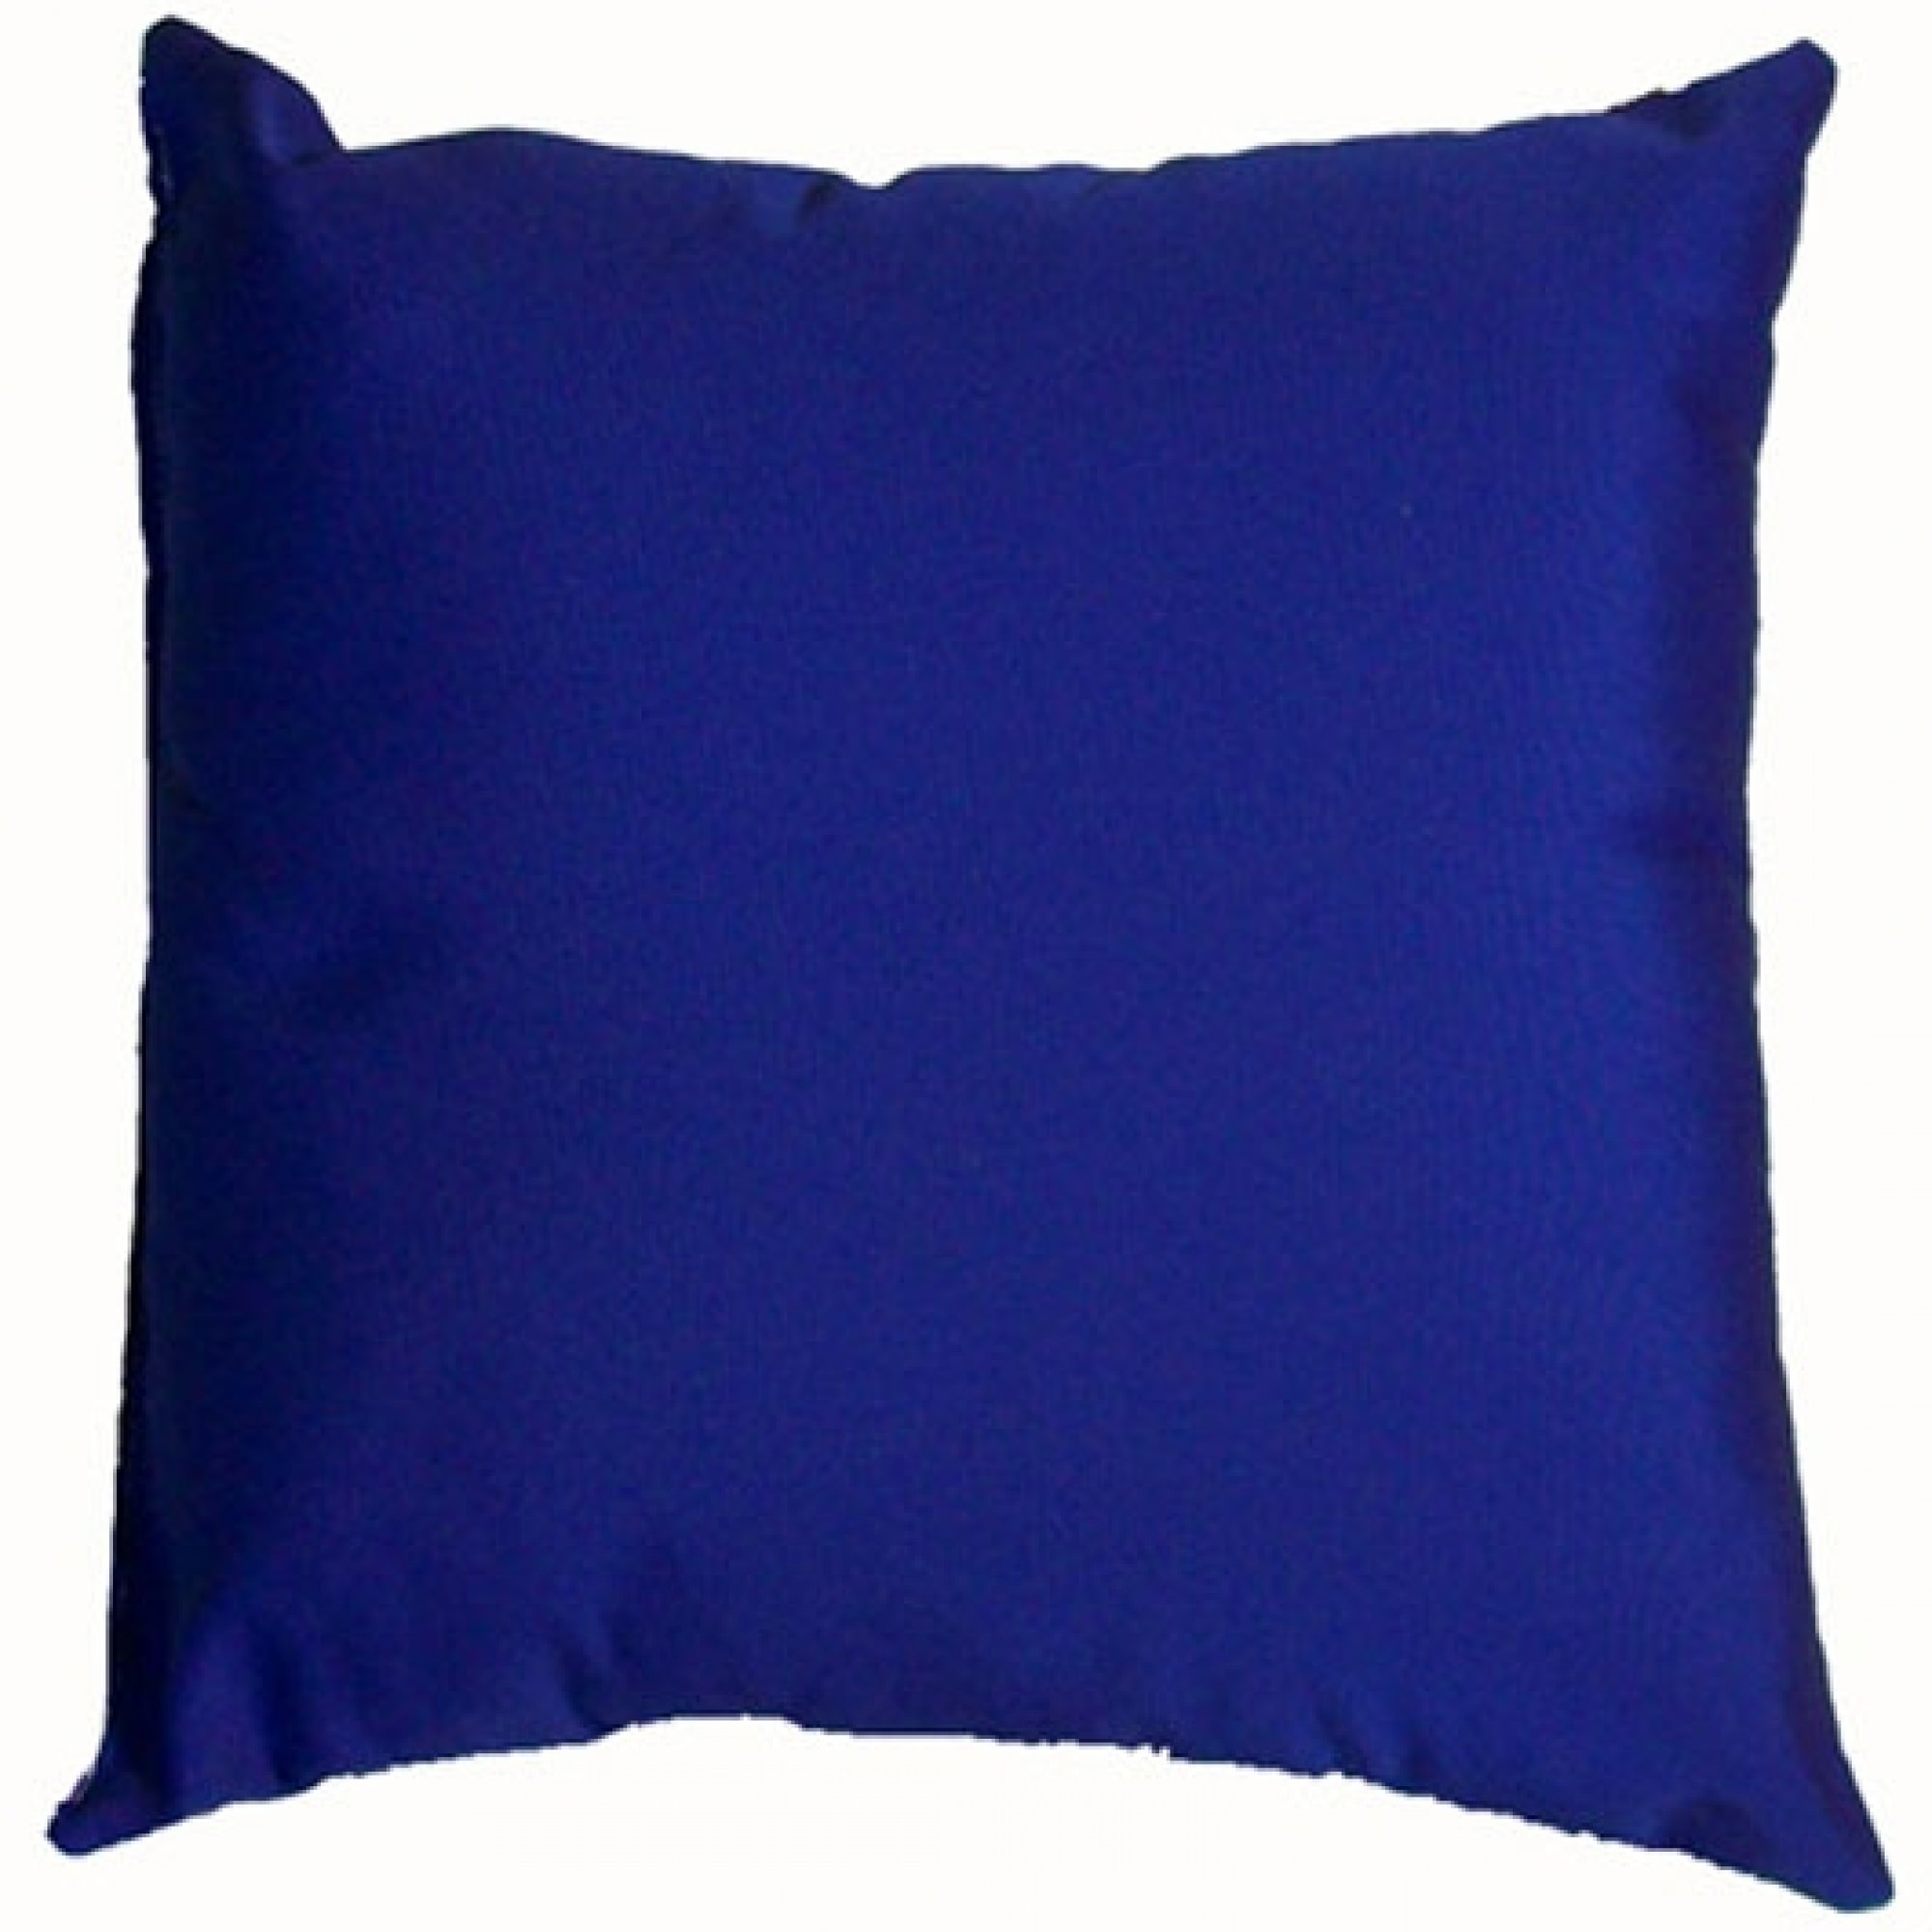 Royal Blue And White Throw Pillows : Royal Blue Sunbrella Outdoor Throw Pillow DFOHome